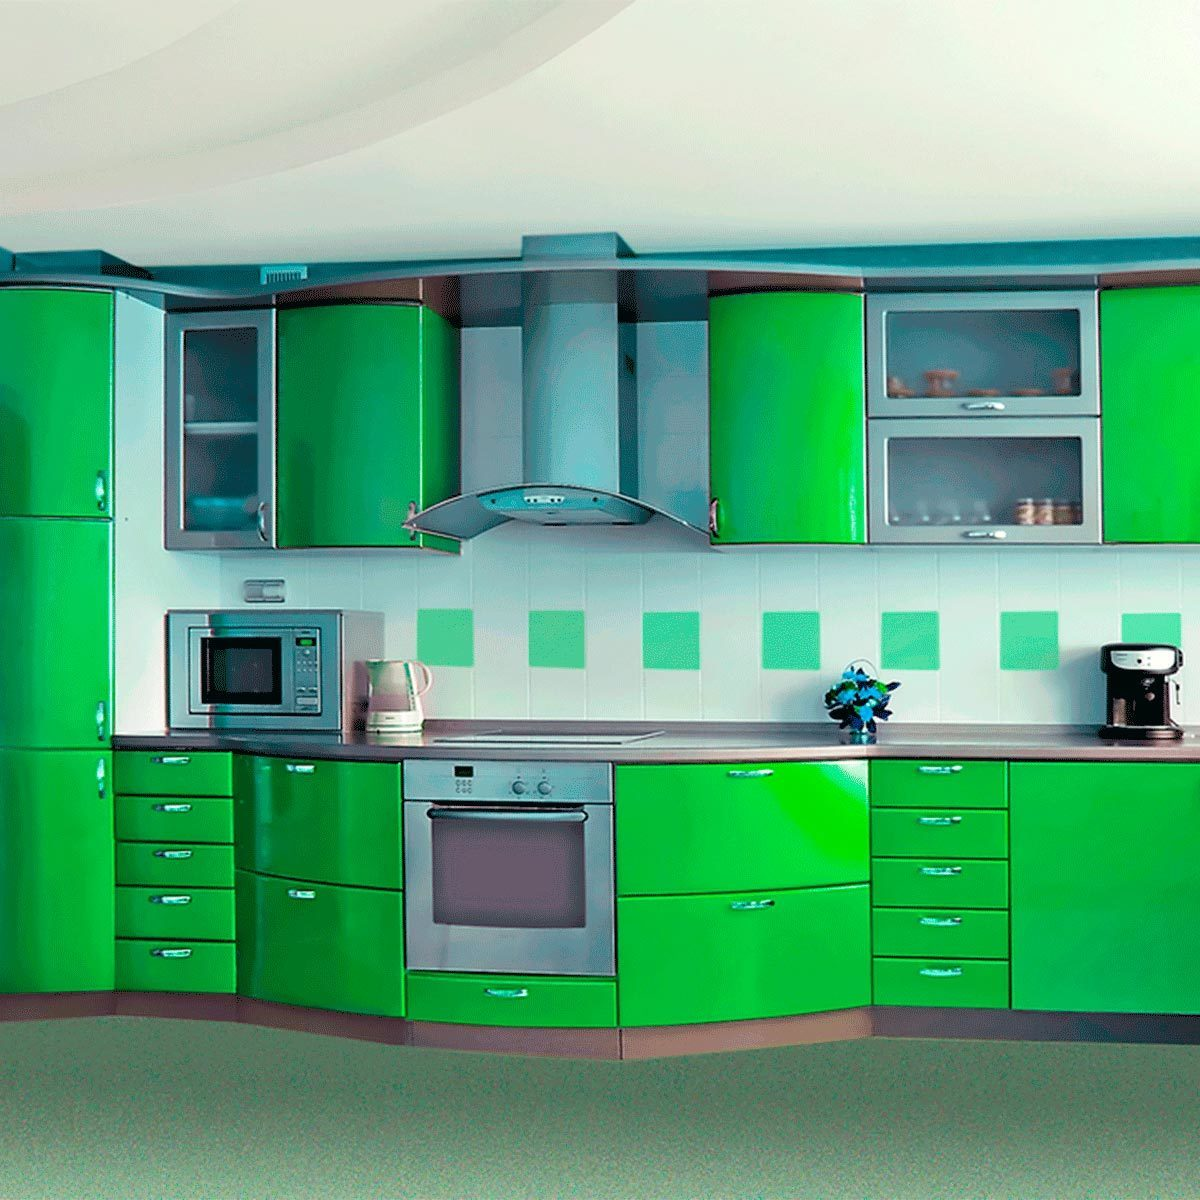 Redo the Cabinets in Shades of Green